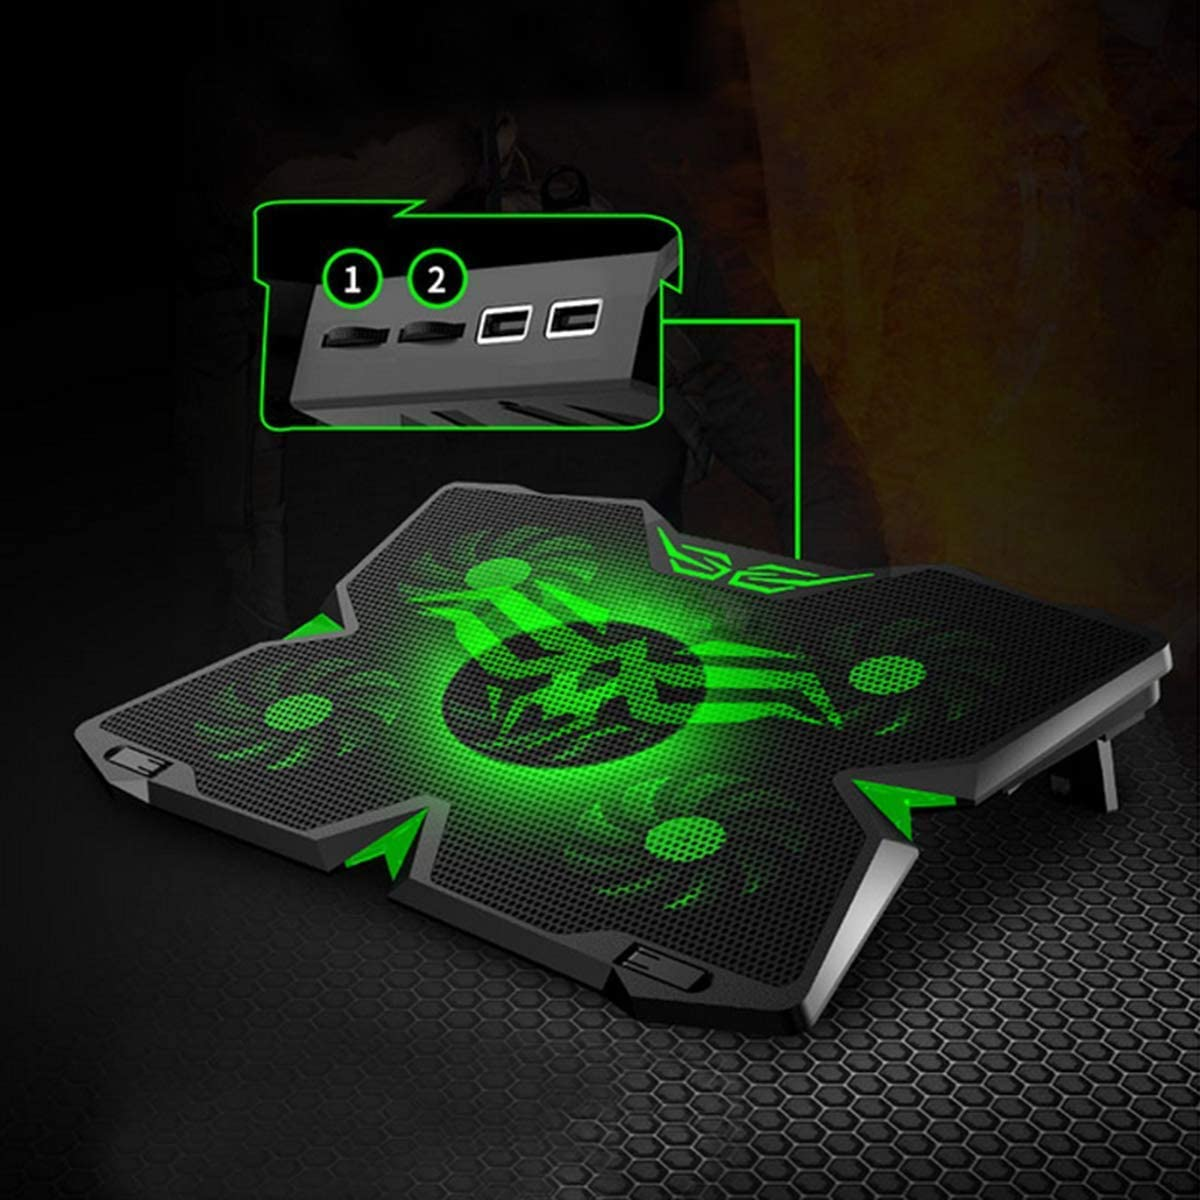 GSUMMER Notebook Cooling Pad Adjustable Mounts Notebook Stand Height Angle Strong Wind Speed Design Laptop Cooler,Green